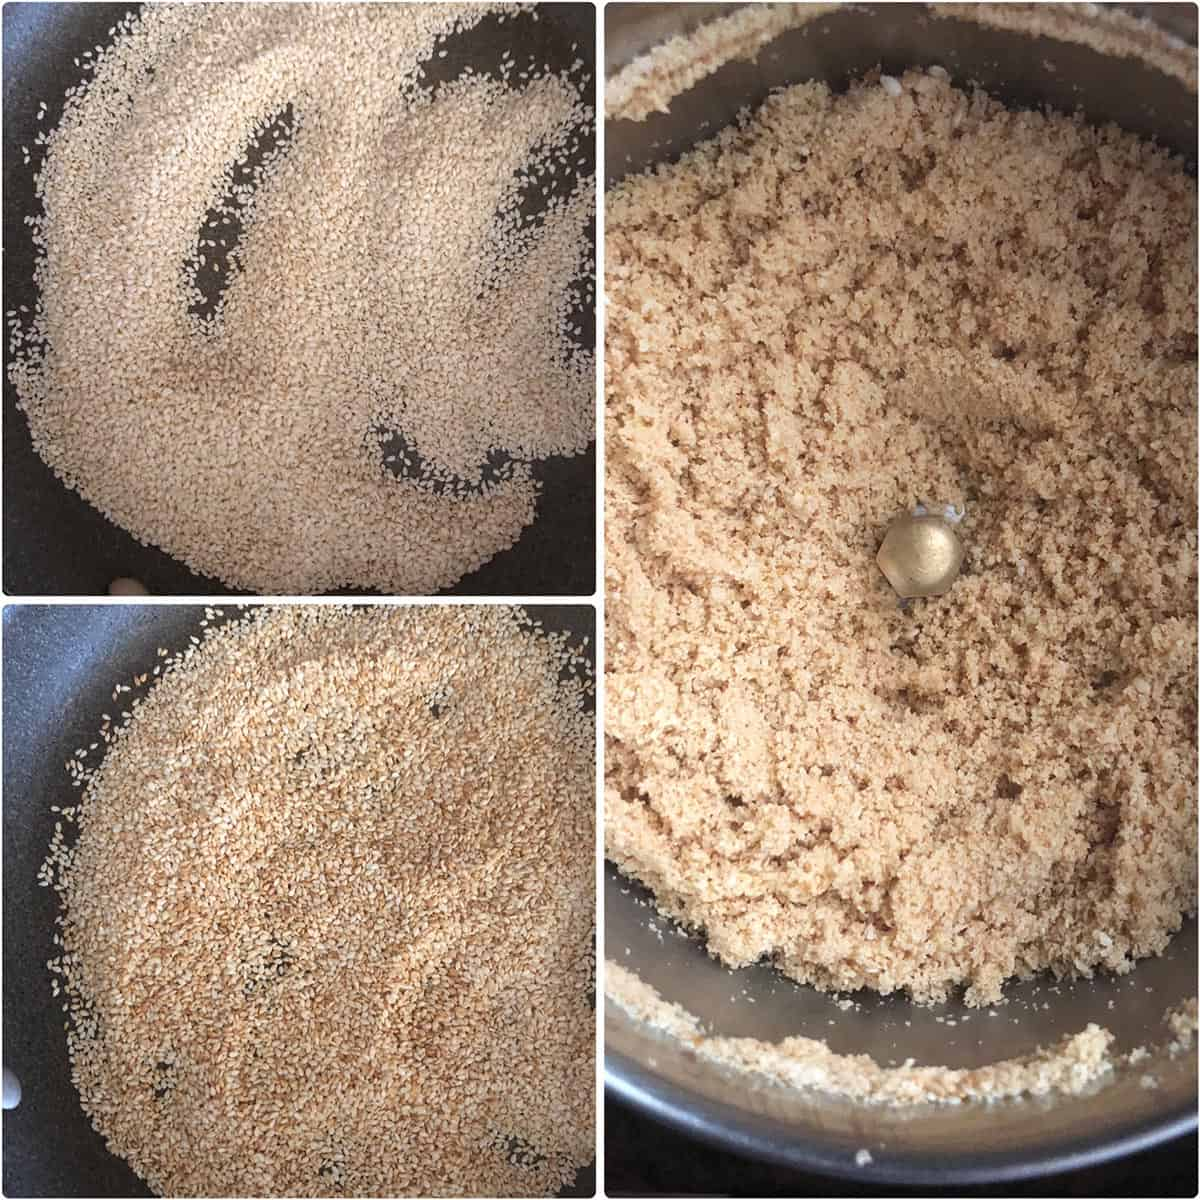 Step by step photos showing roasted and ground sesame seeds